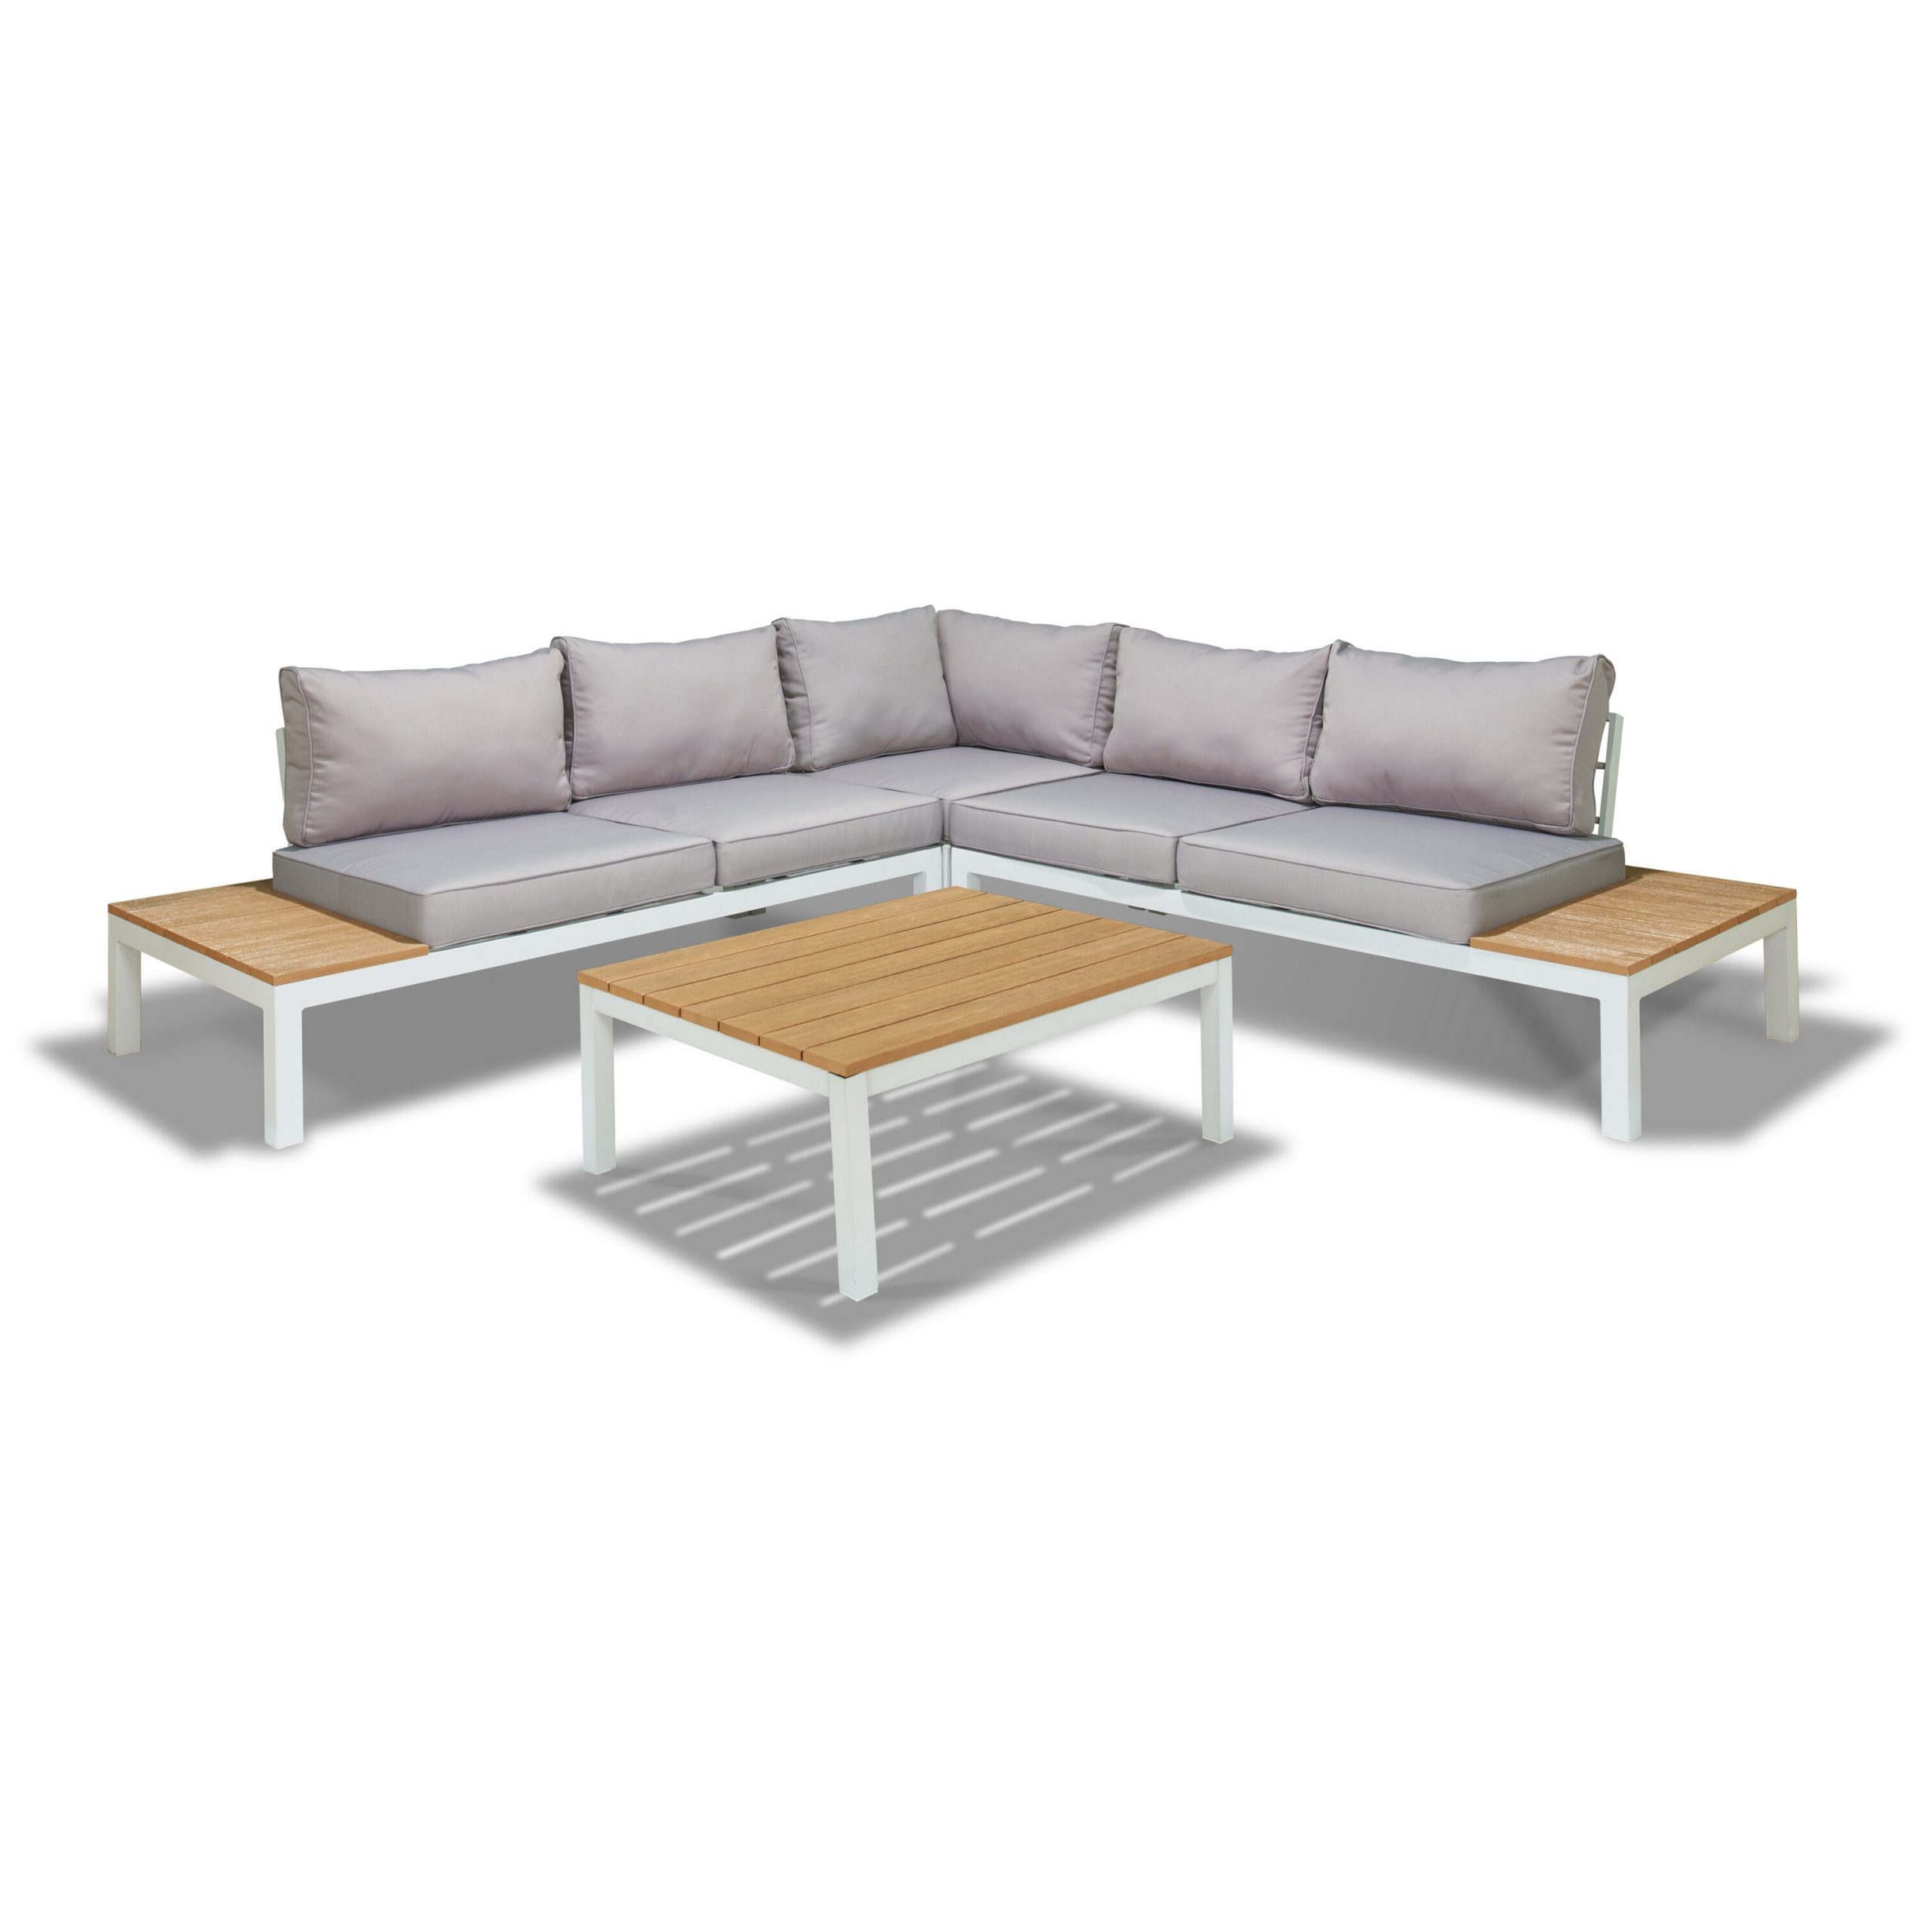 Fashionable Carina 4 Piece Sectionals Seating Group With Cushions For Schneider 4 Piece Sectional Seating Group With Cushion (View 11 of 25)